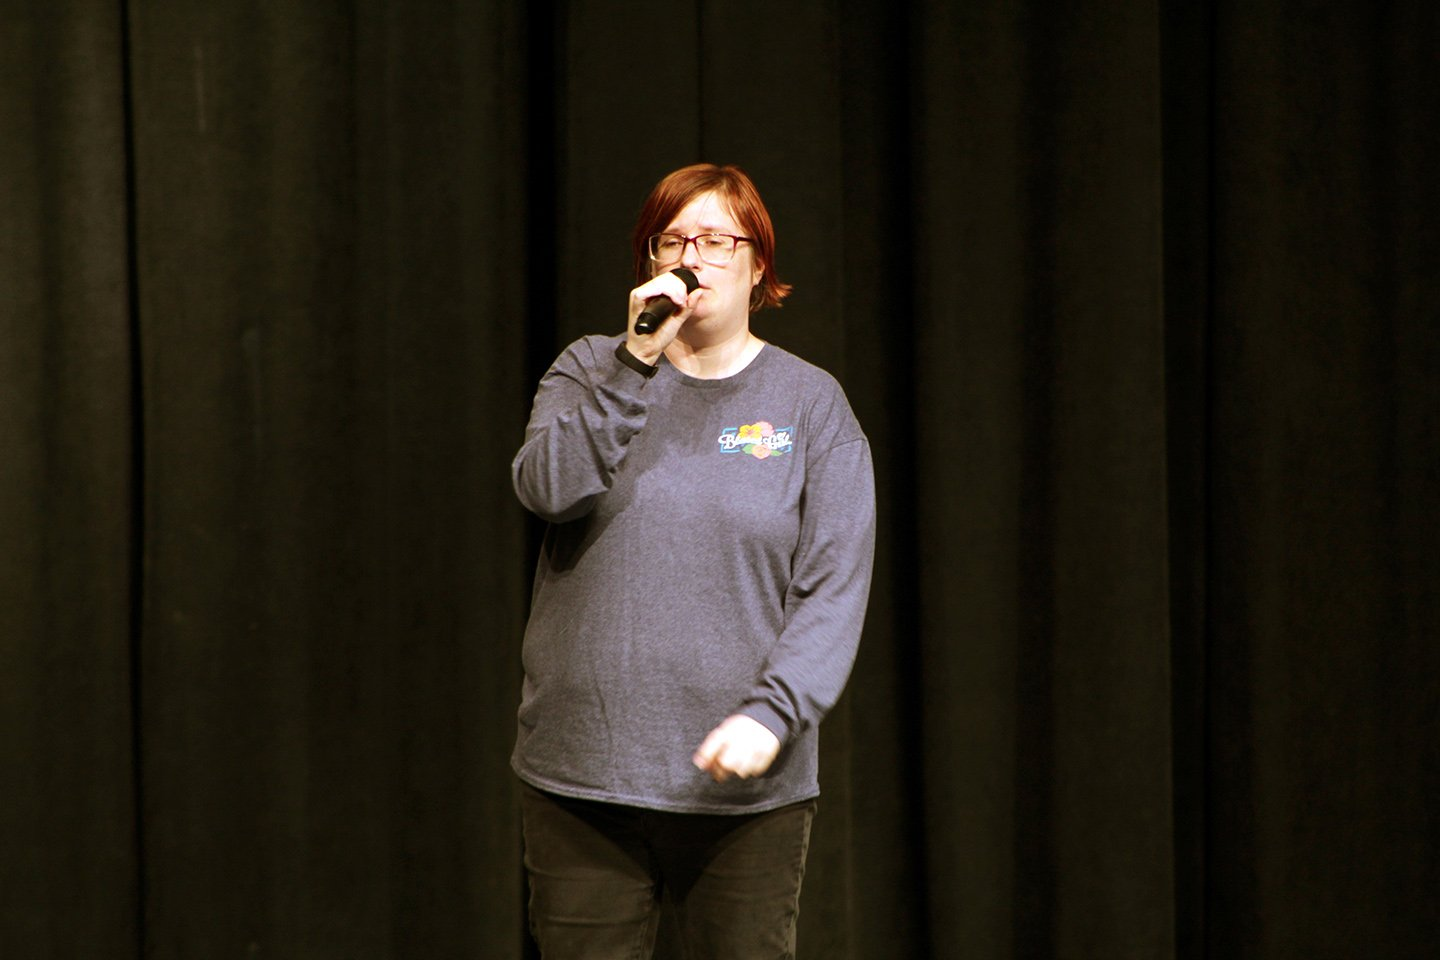 """Jamie Chambers, community member, practices her cover of the 2008 Taylor Swift song """"You Belong with Me""""."""